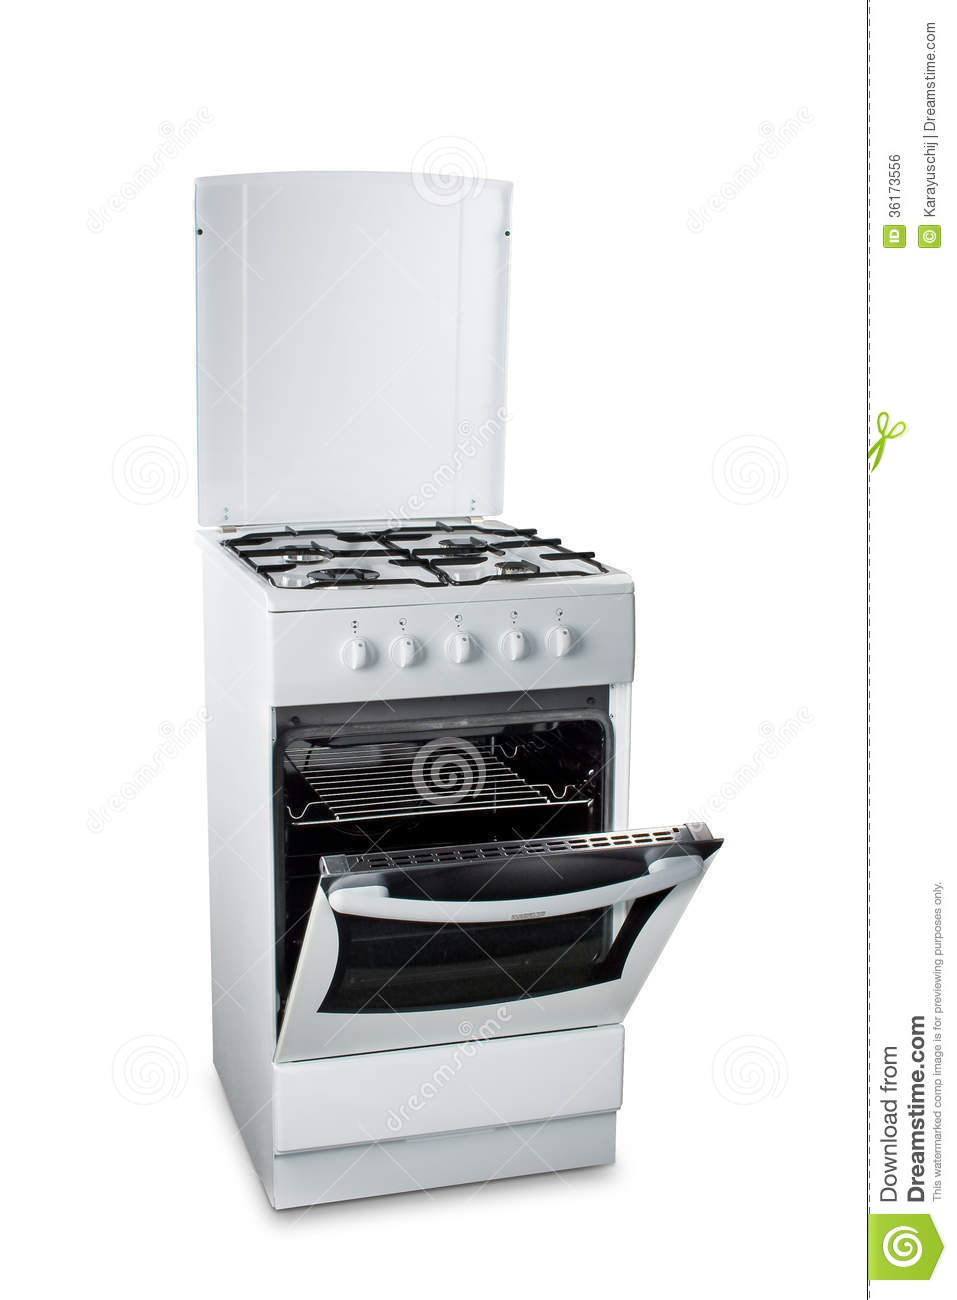 Gas Stove With Open Oven Royalty Free Stock Image - Image ...